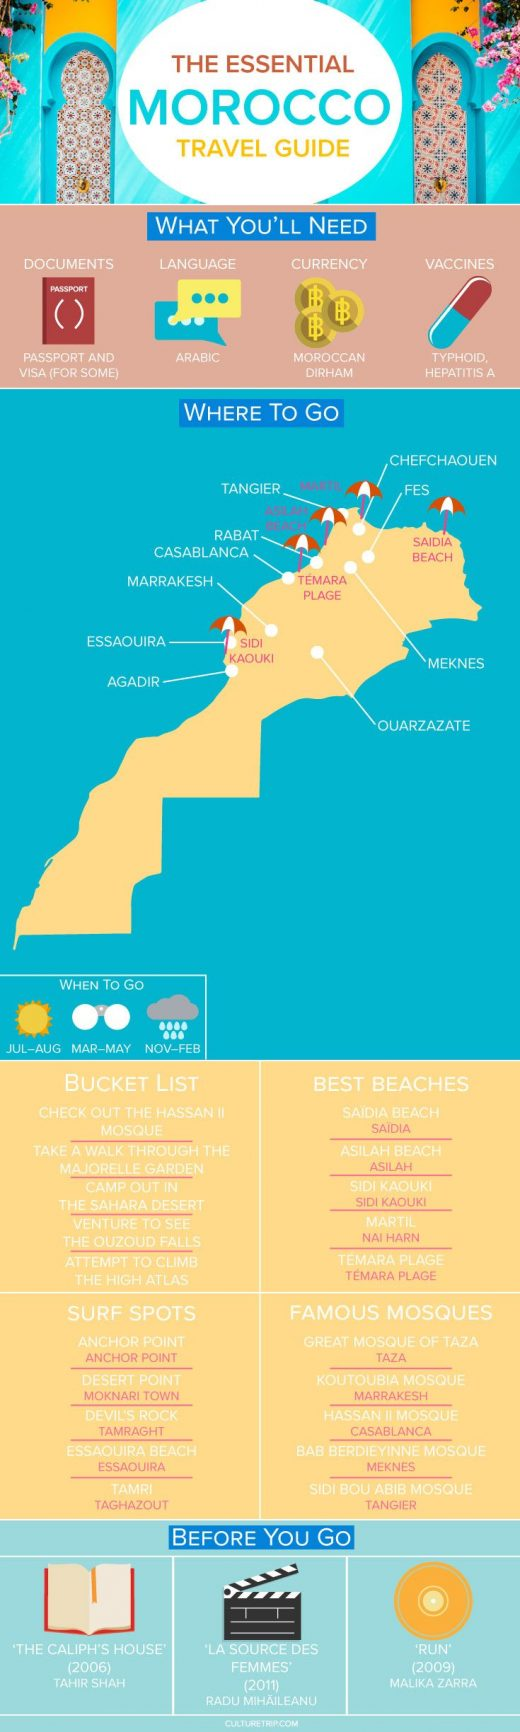 The Essential Travel Guide to Morocco (Infographic)